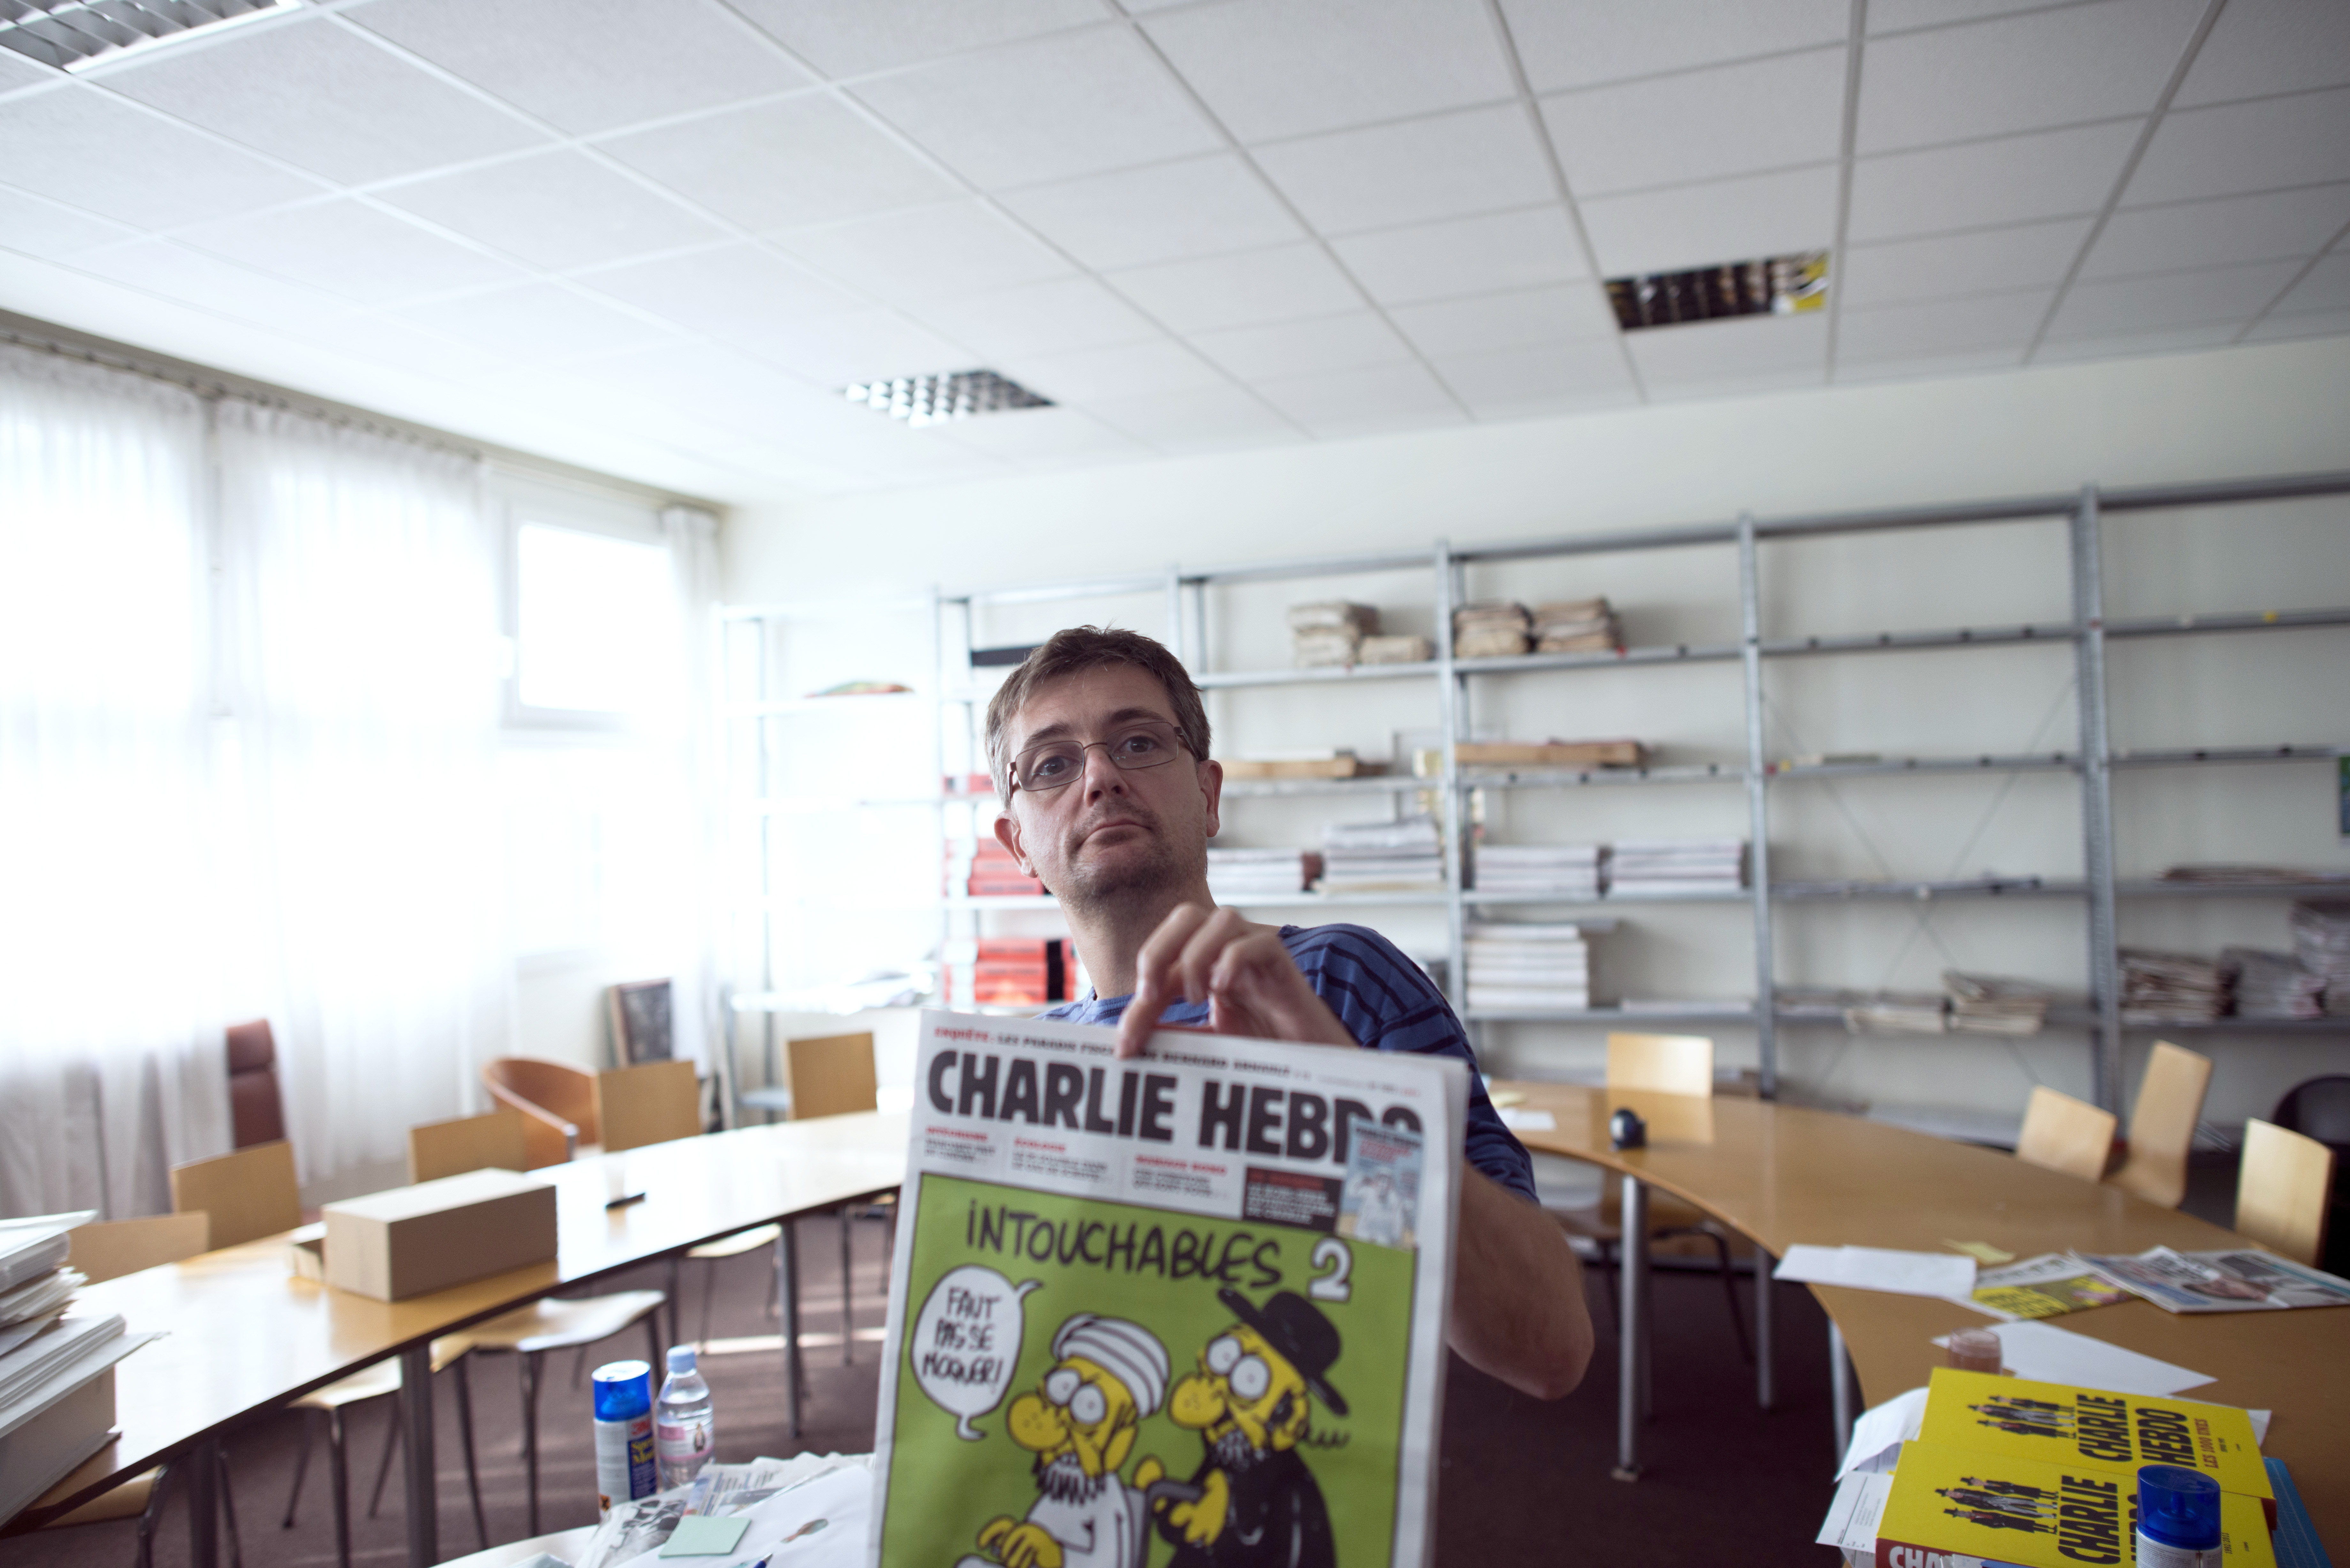 French satirical weekly Charlie Hebdo's publisher and cartoonist presents to journalists the front cover a satirical drawing titled  Intouchables 2  in Paris on Sep. 19, 2012.